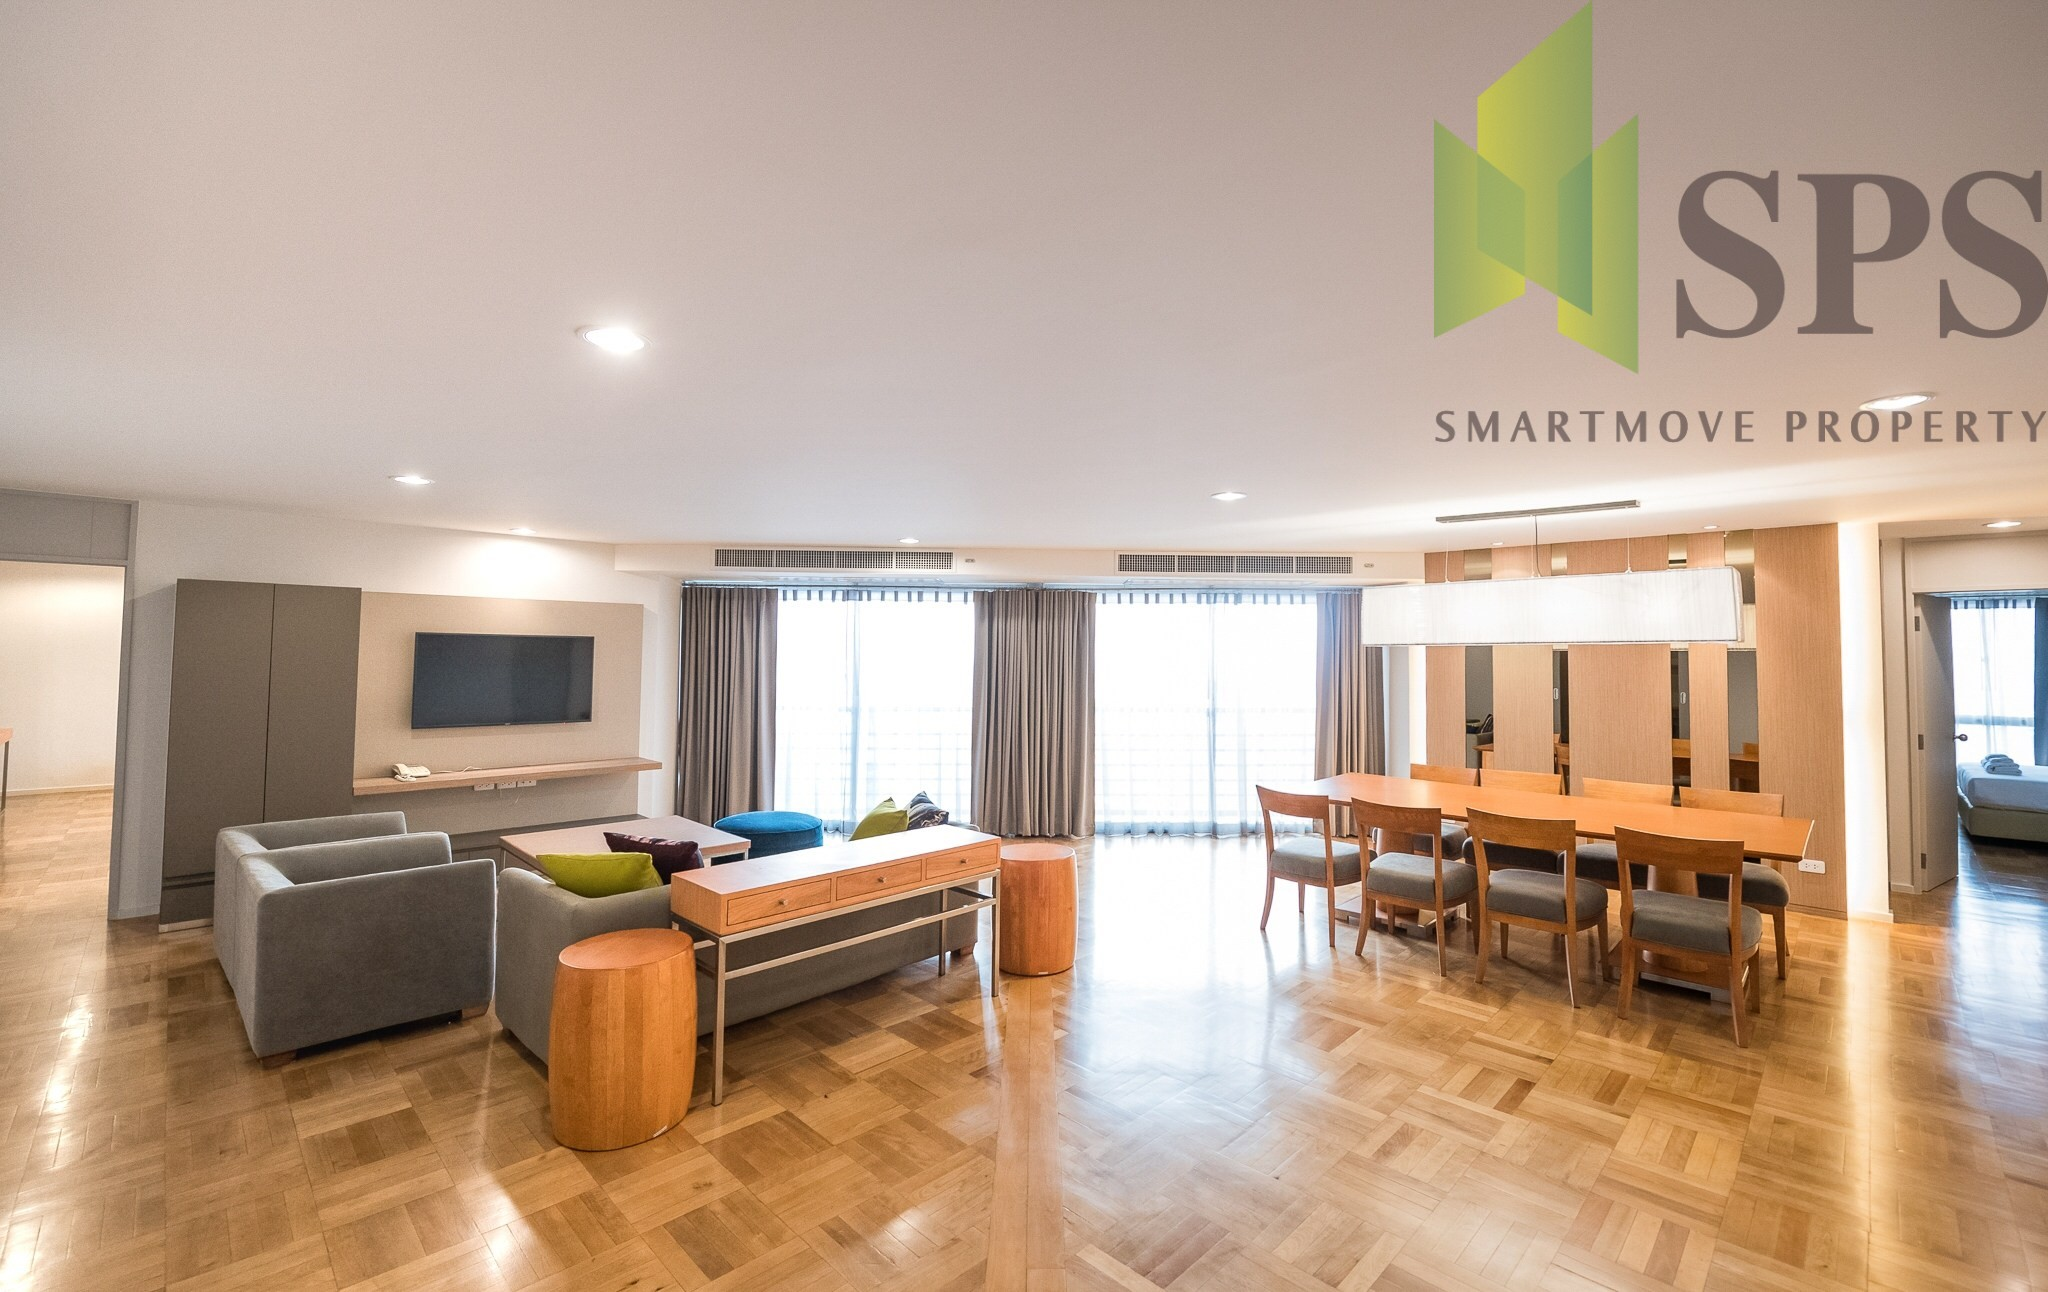 BANGKOK GARDEN APARTMENT FOR RENT Perfect blend of serenity, comfort and privacy near Sathorn (SPS-LN-BKGDN-11)